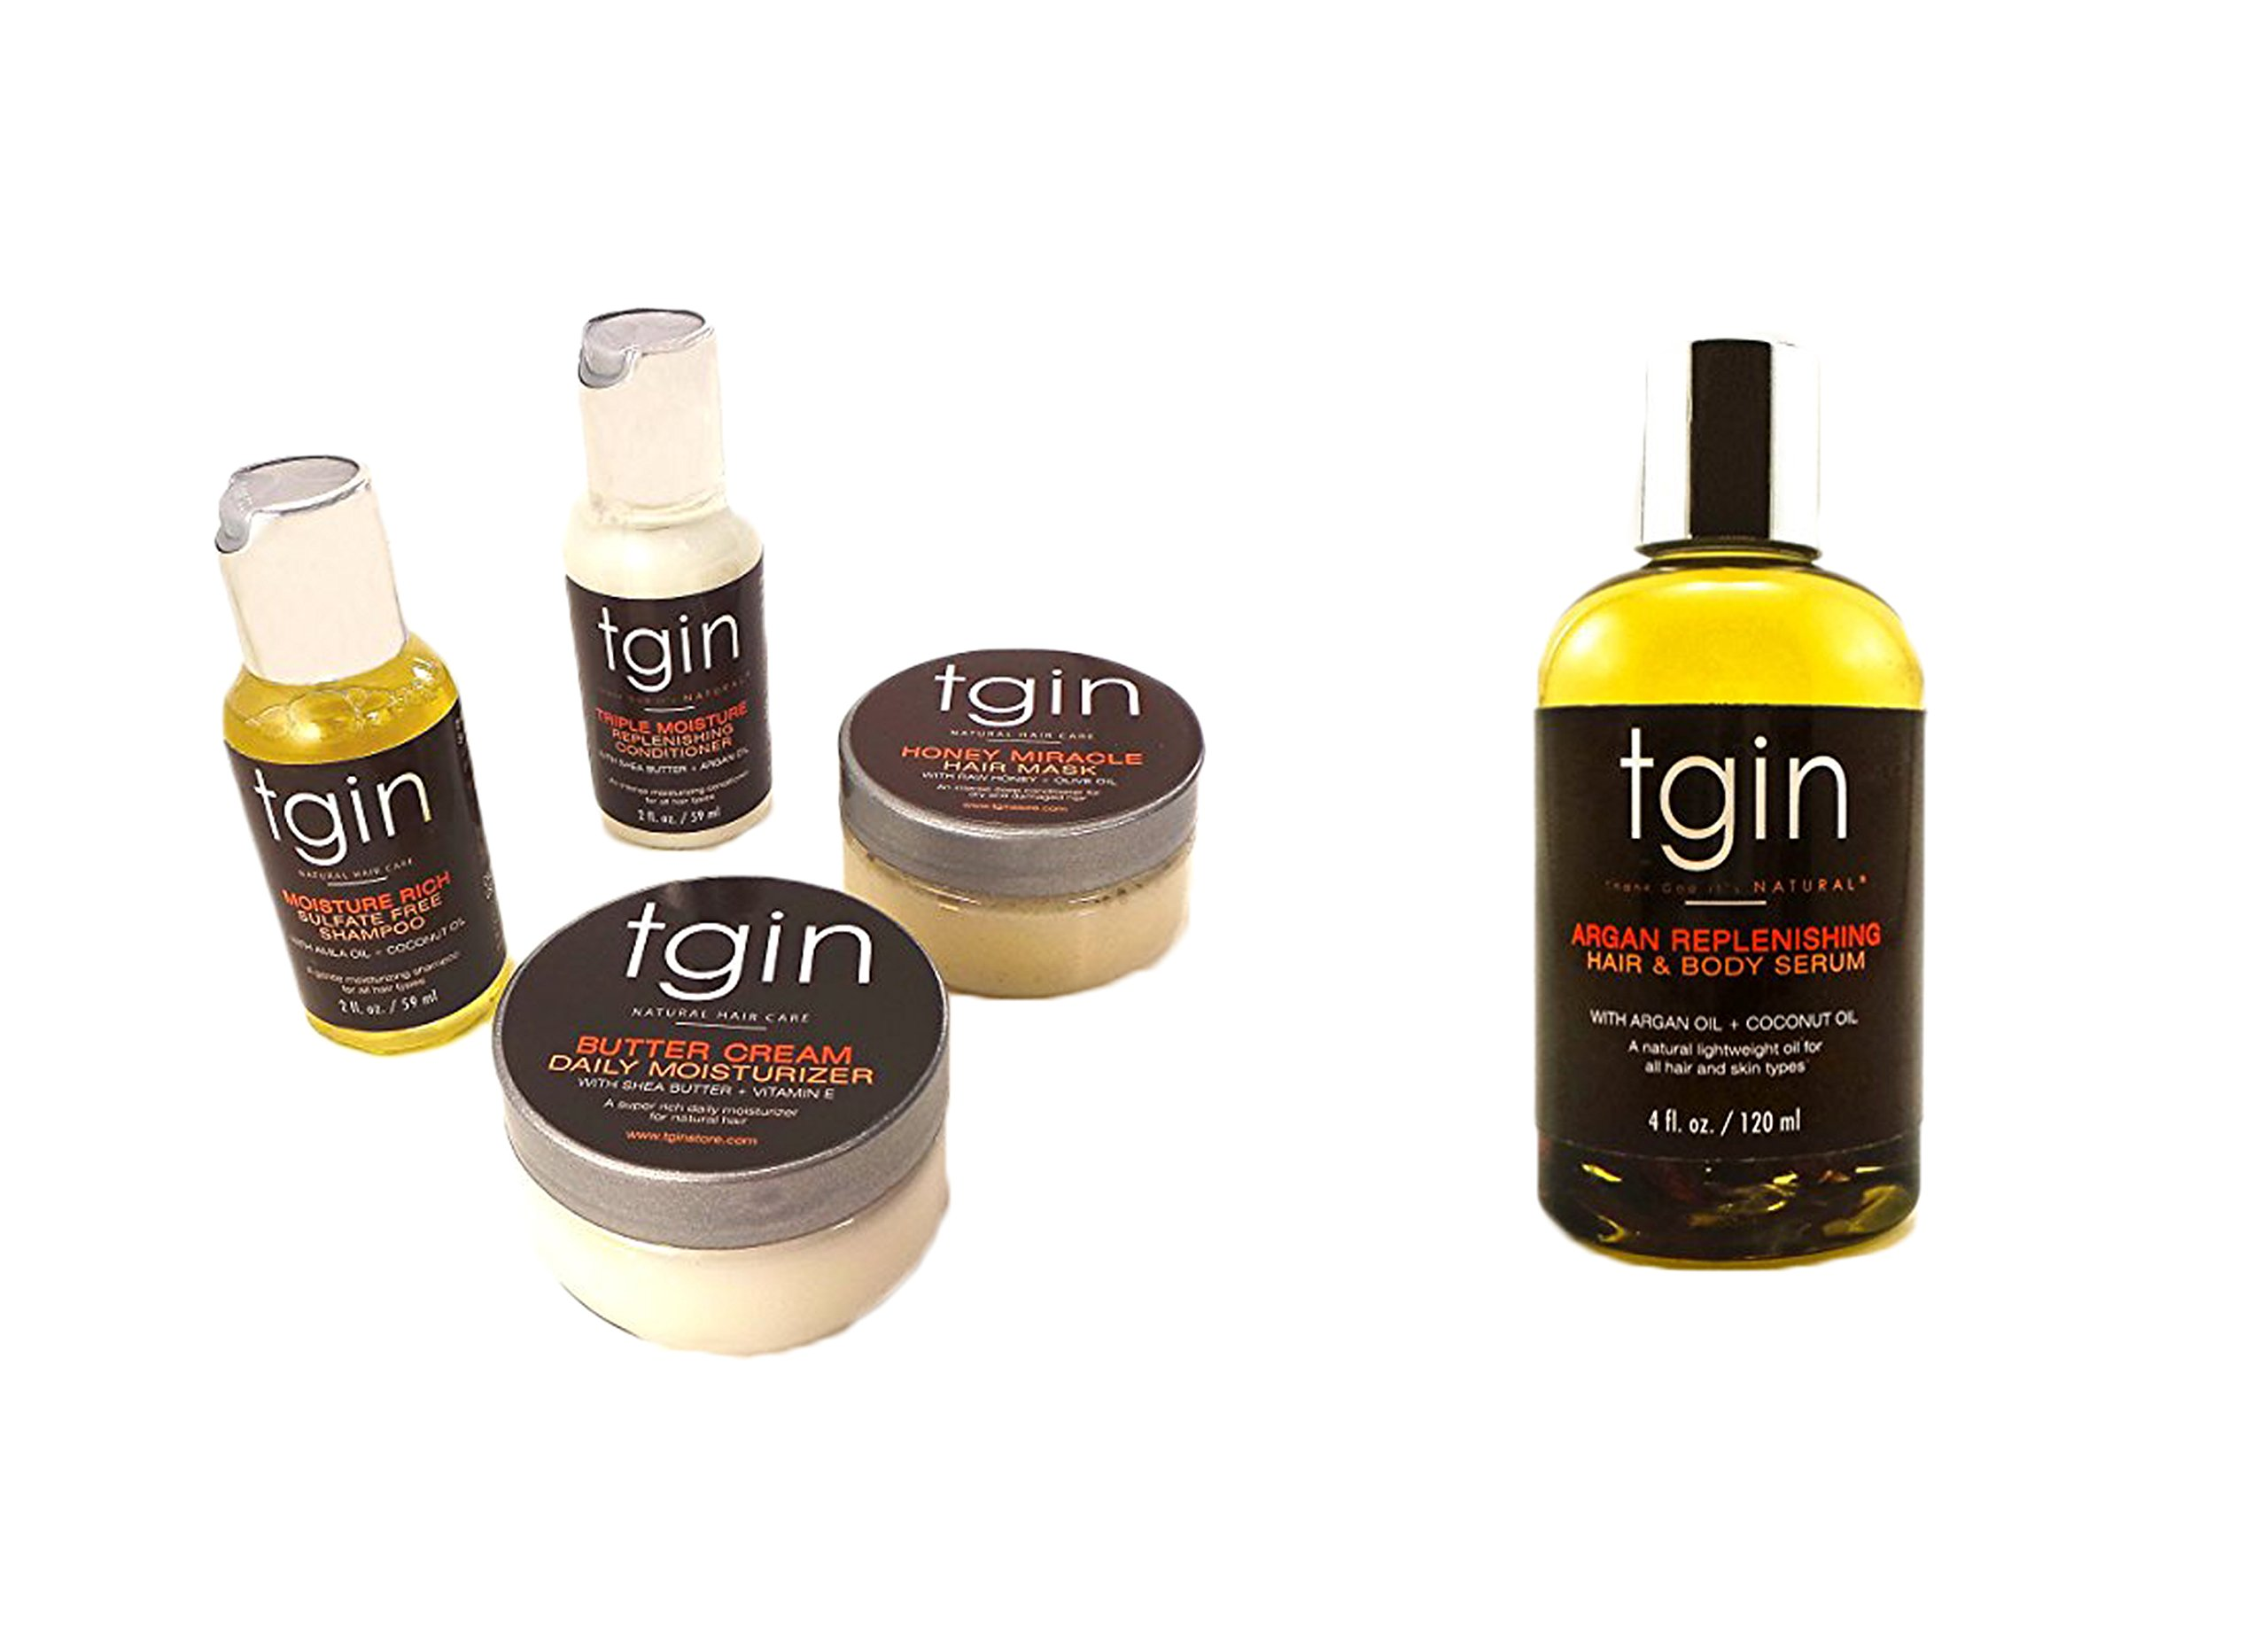 TGIN Moist Collection for Natural Hair Set and TGIN 4 oz. Argan Replenishing and Hair Body Serum for Natural Hair bundled by Maven Gifts